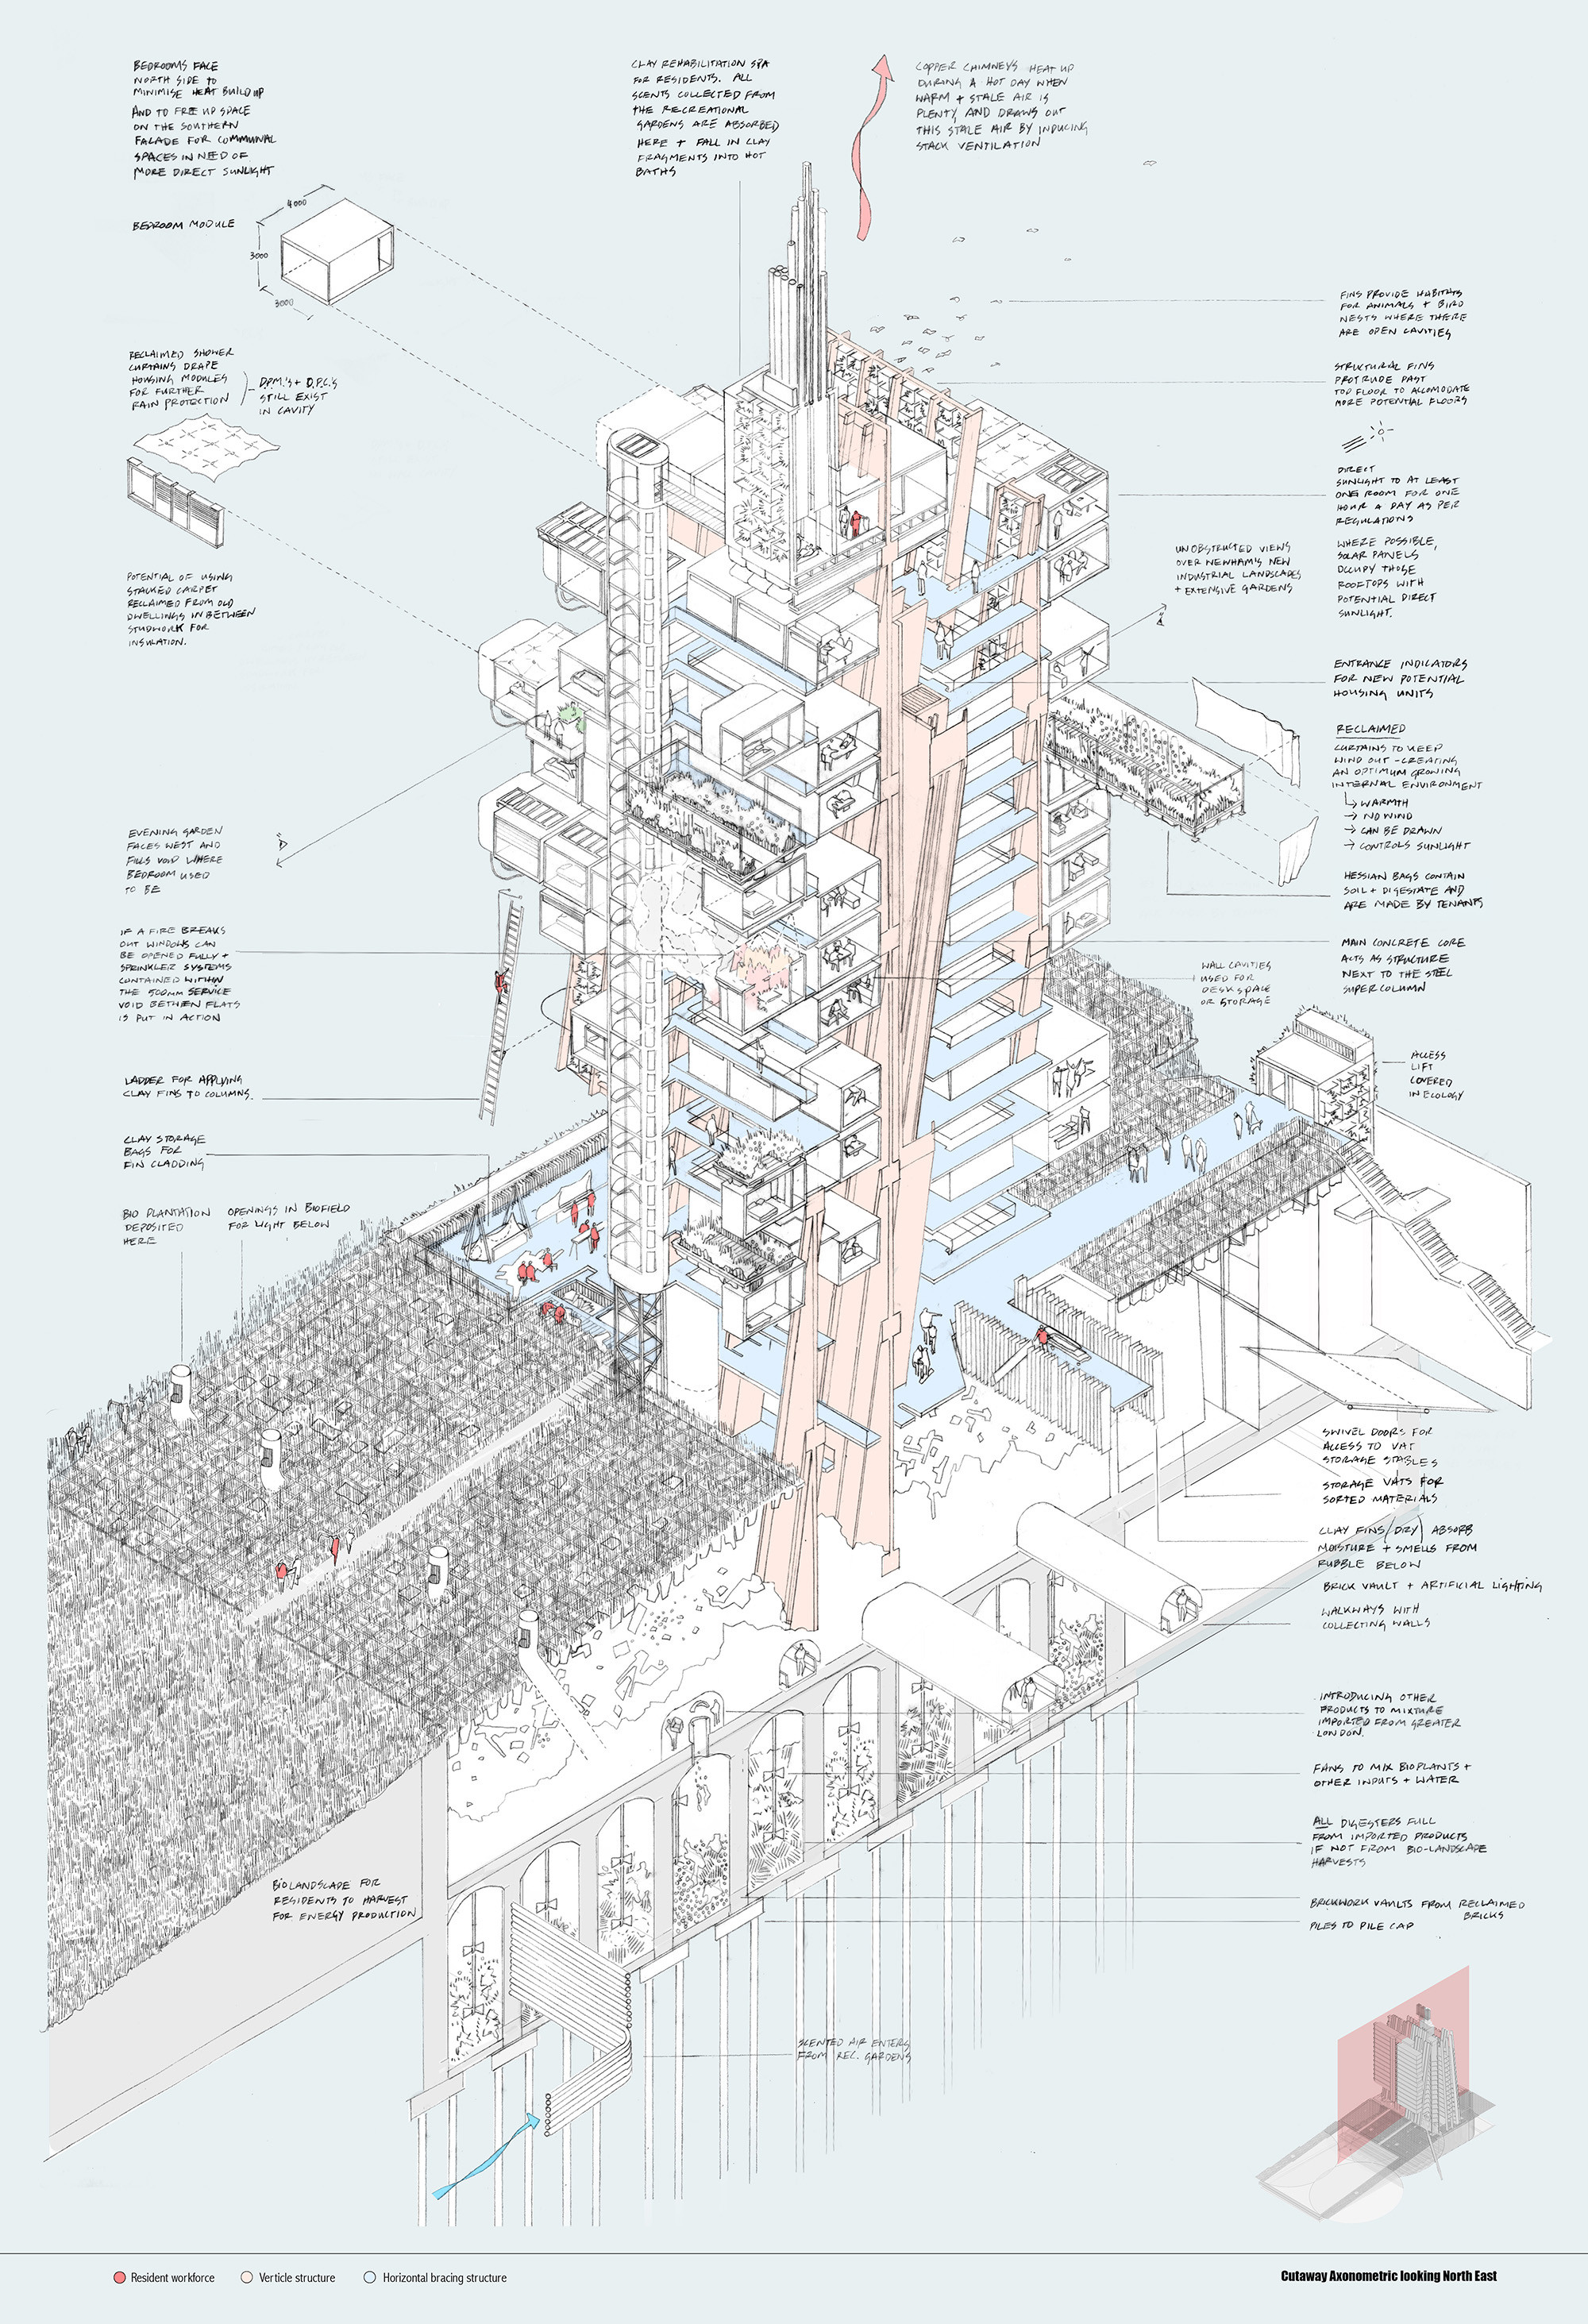 2014 riba president's medals winners announced | archdaily